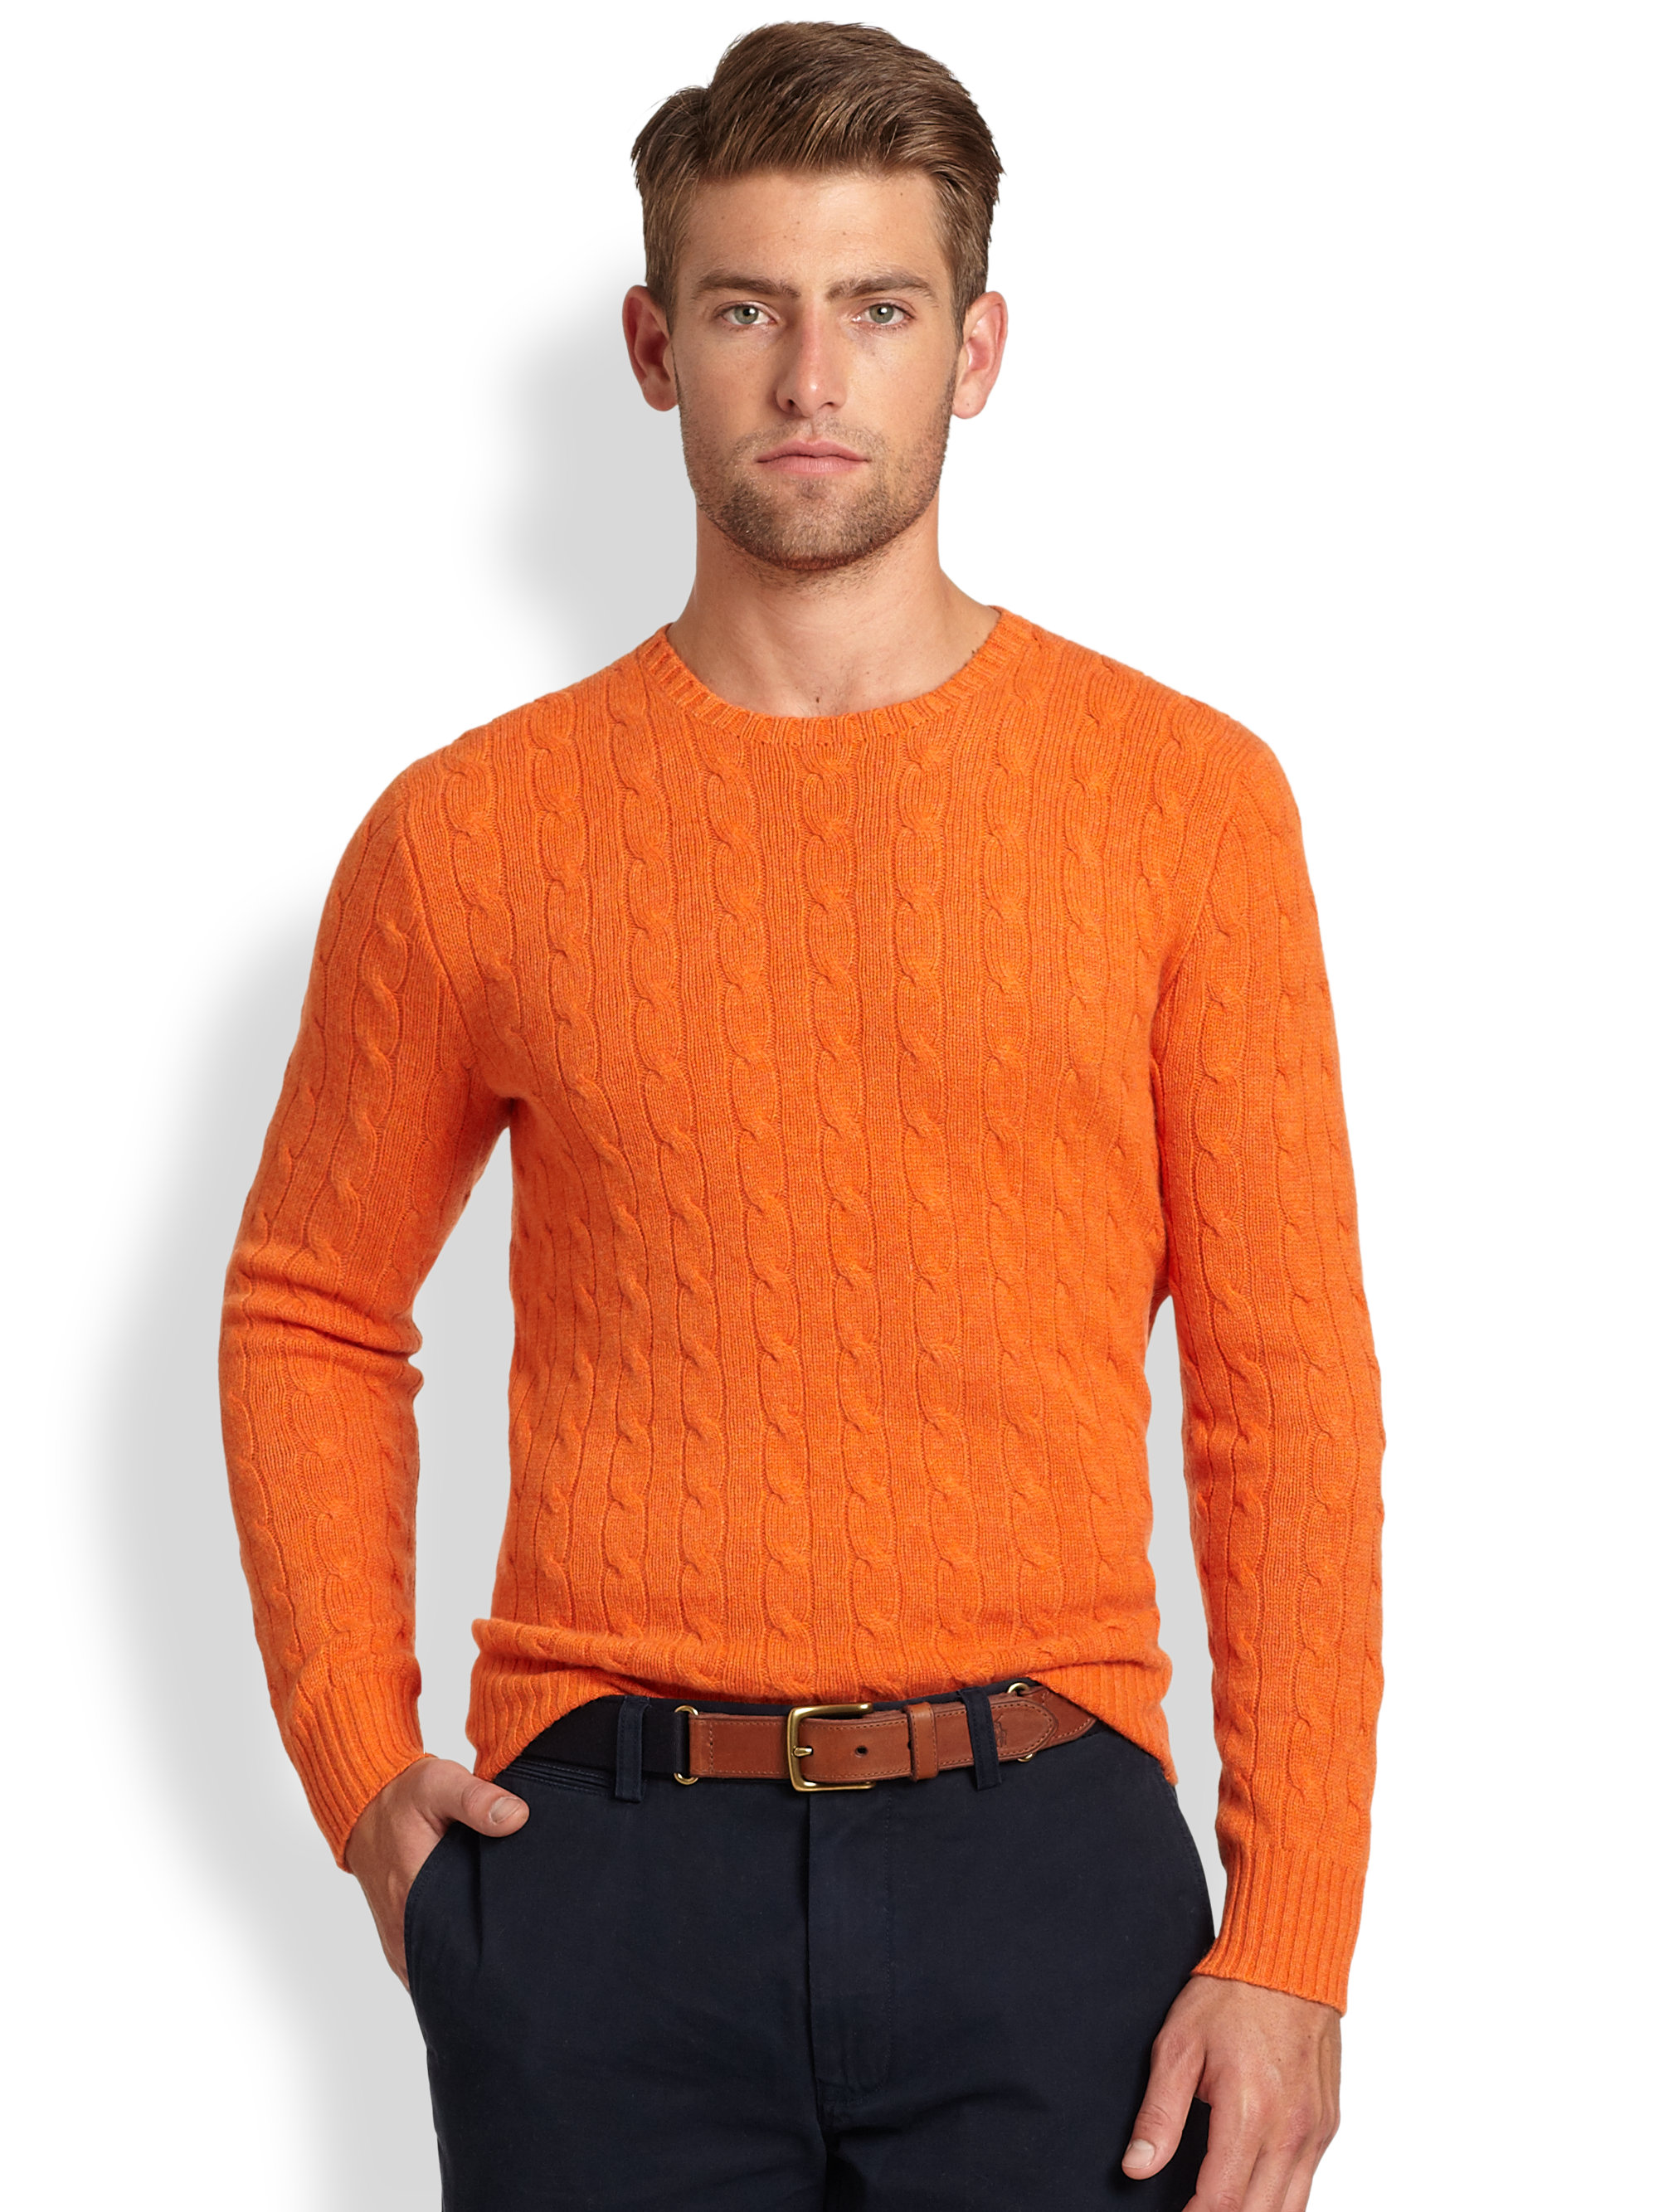 Polo ralph lauren Cable Knit Cashmere Crewneck Sweater in Orange ...